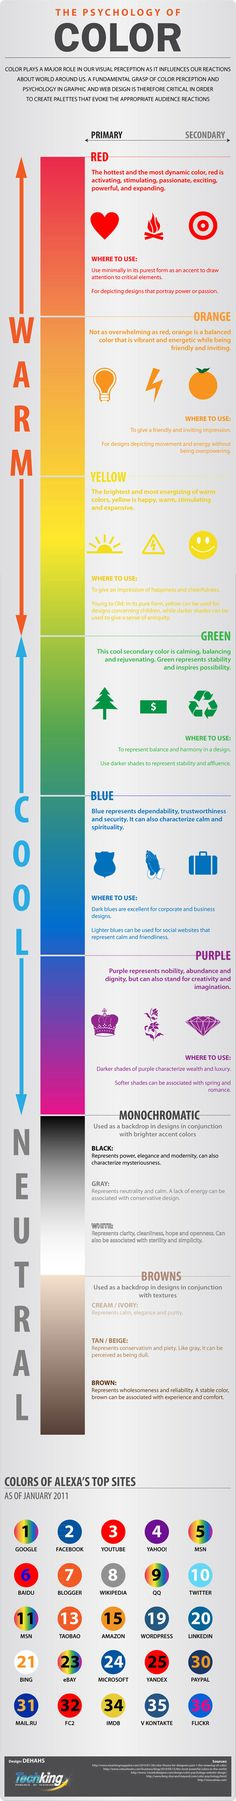 The psichology of color